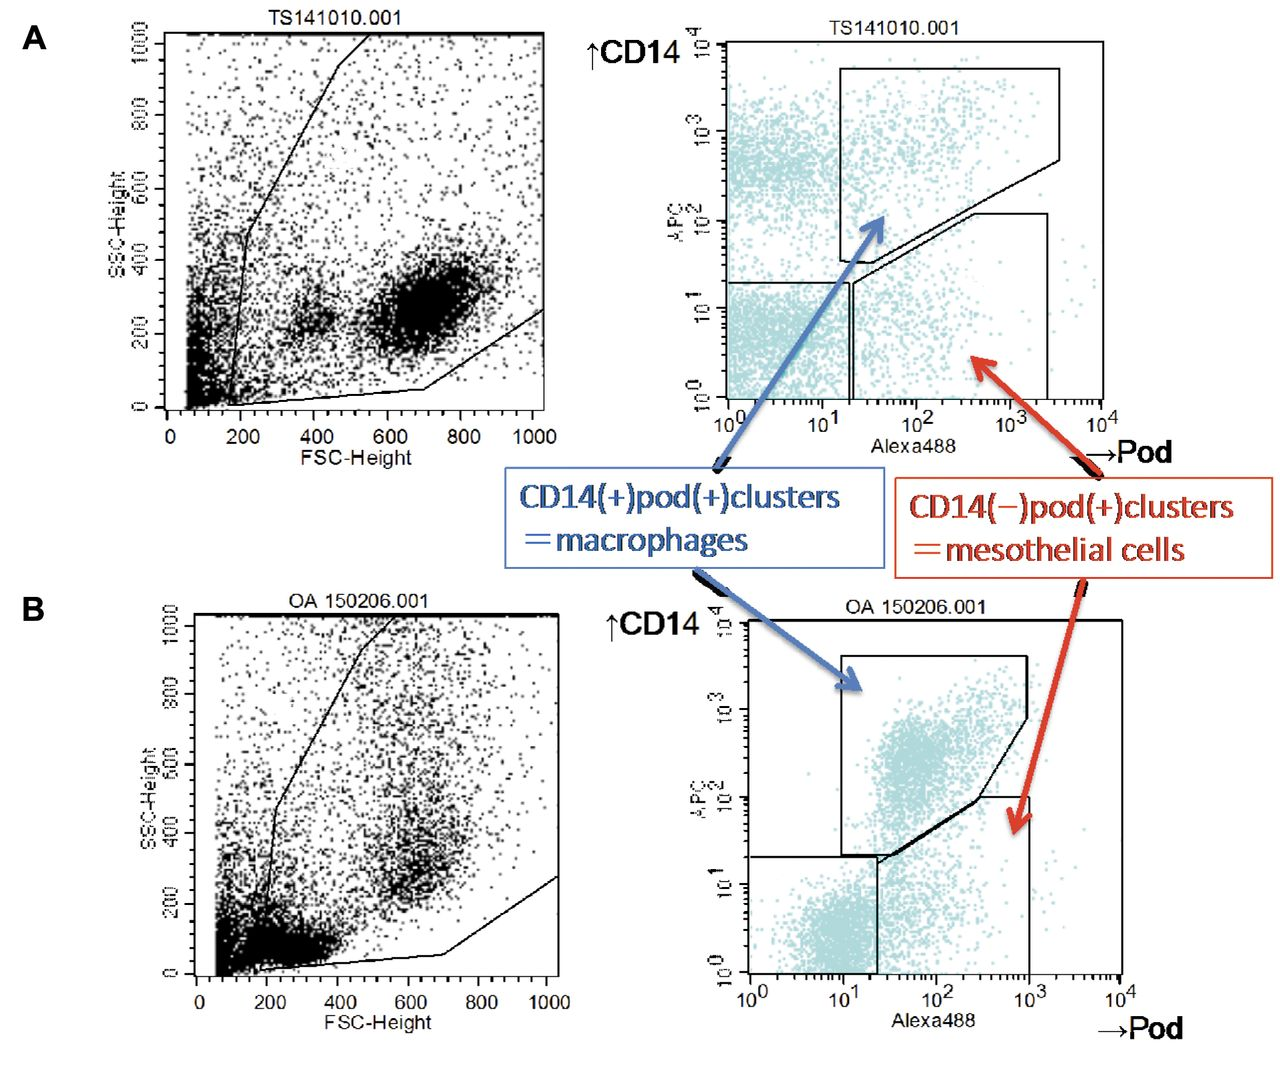 Flow Cytometric Analysis Of Ovarian Cancer Ascites Response Of Mesothelial Cells And Macrophages To Cancer